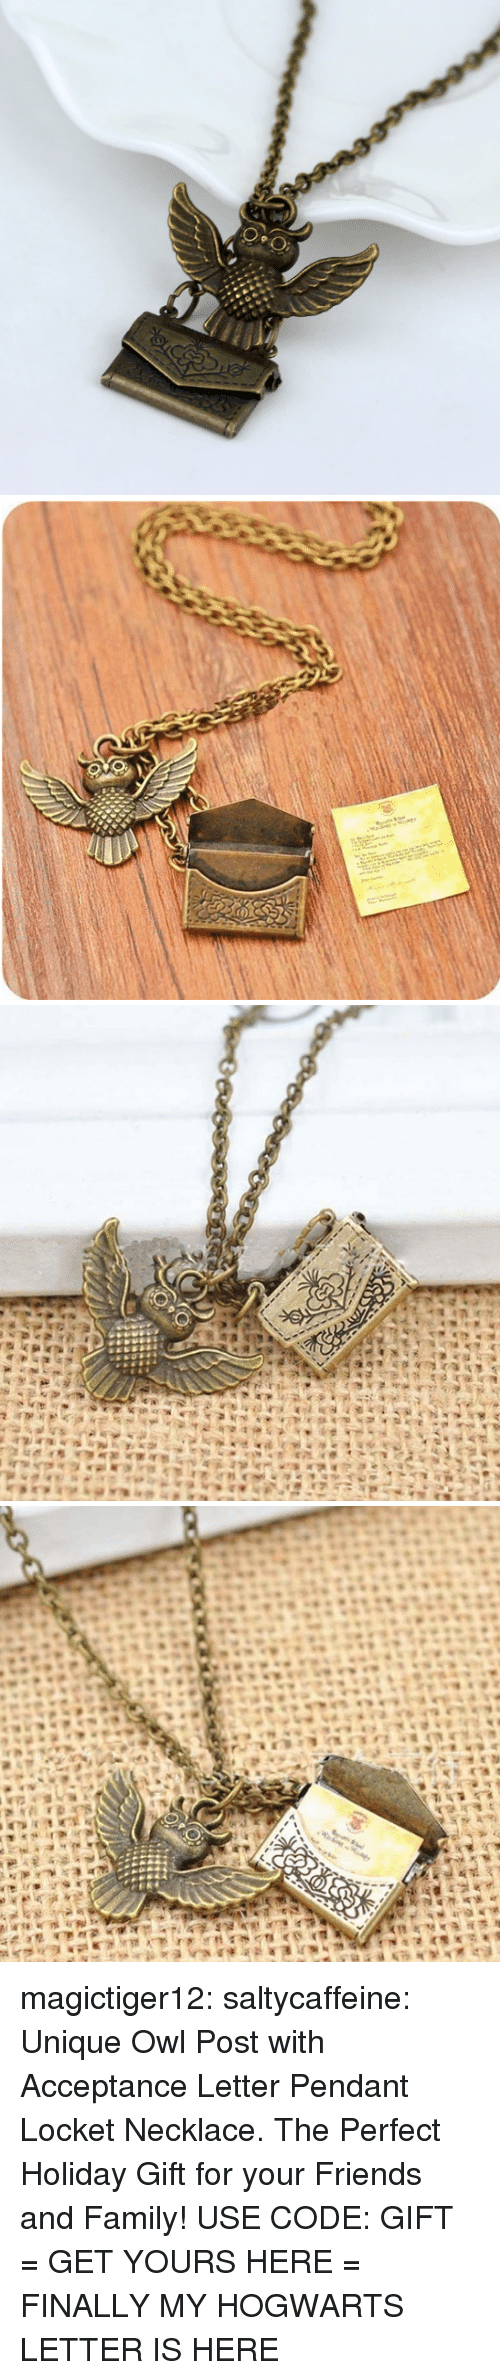 Family, Friends, and Target: magictiger12:  saltycaffeine: Unique Owl Post with Acceptance Letter Pendant Locket Necklace. The Perfect Holiday Gift for your Friends and Family! USE CODE: GIFT = GET YOURS HERE =   FINALLY MY HOGWARTS LETTER IS HERE